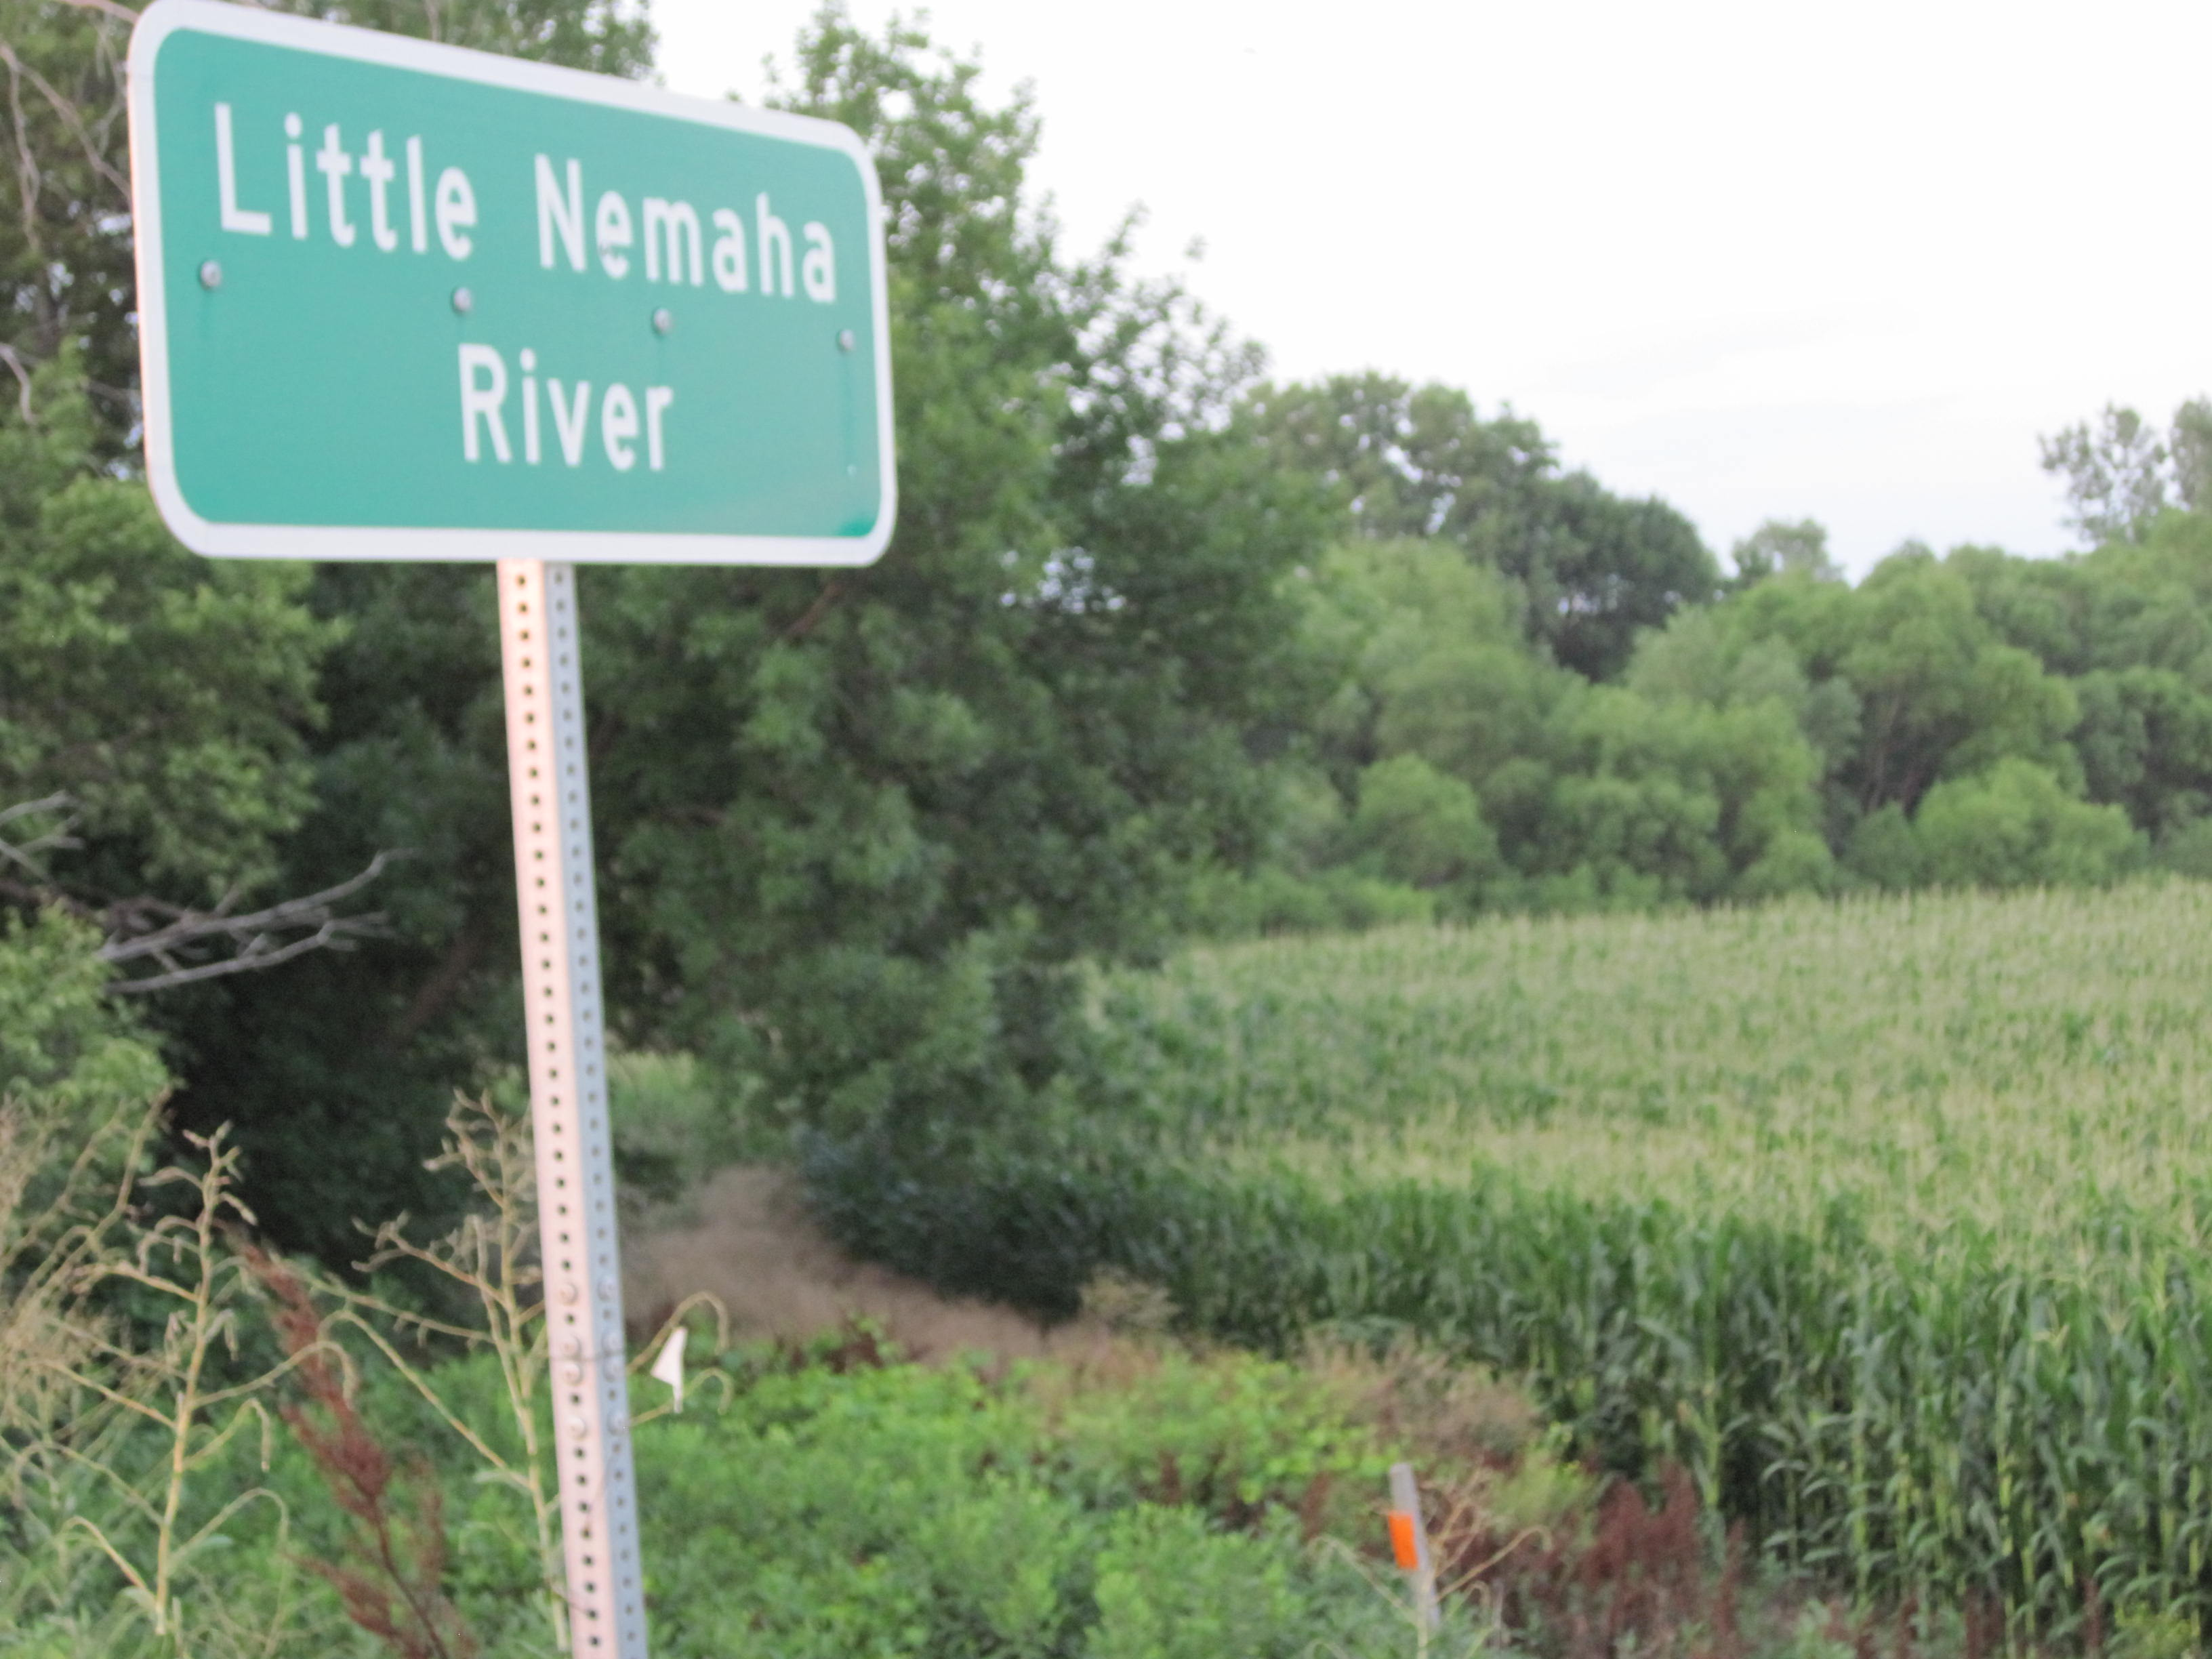 Little Nemaha River